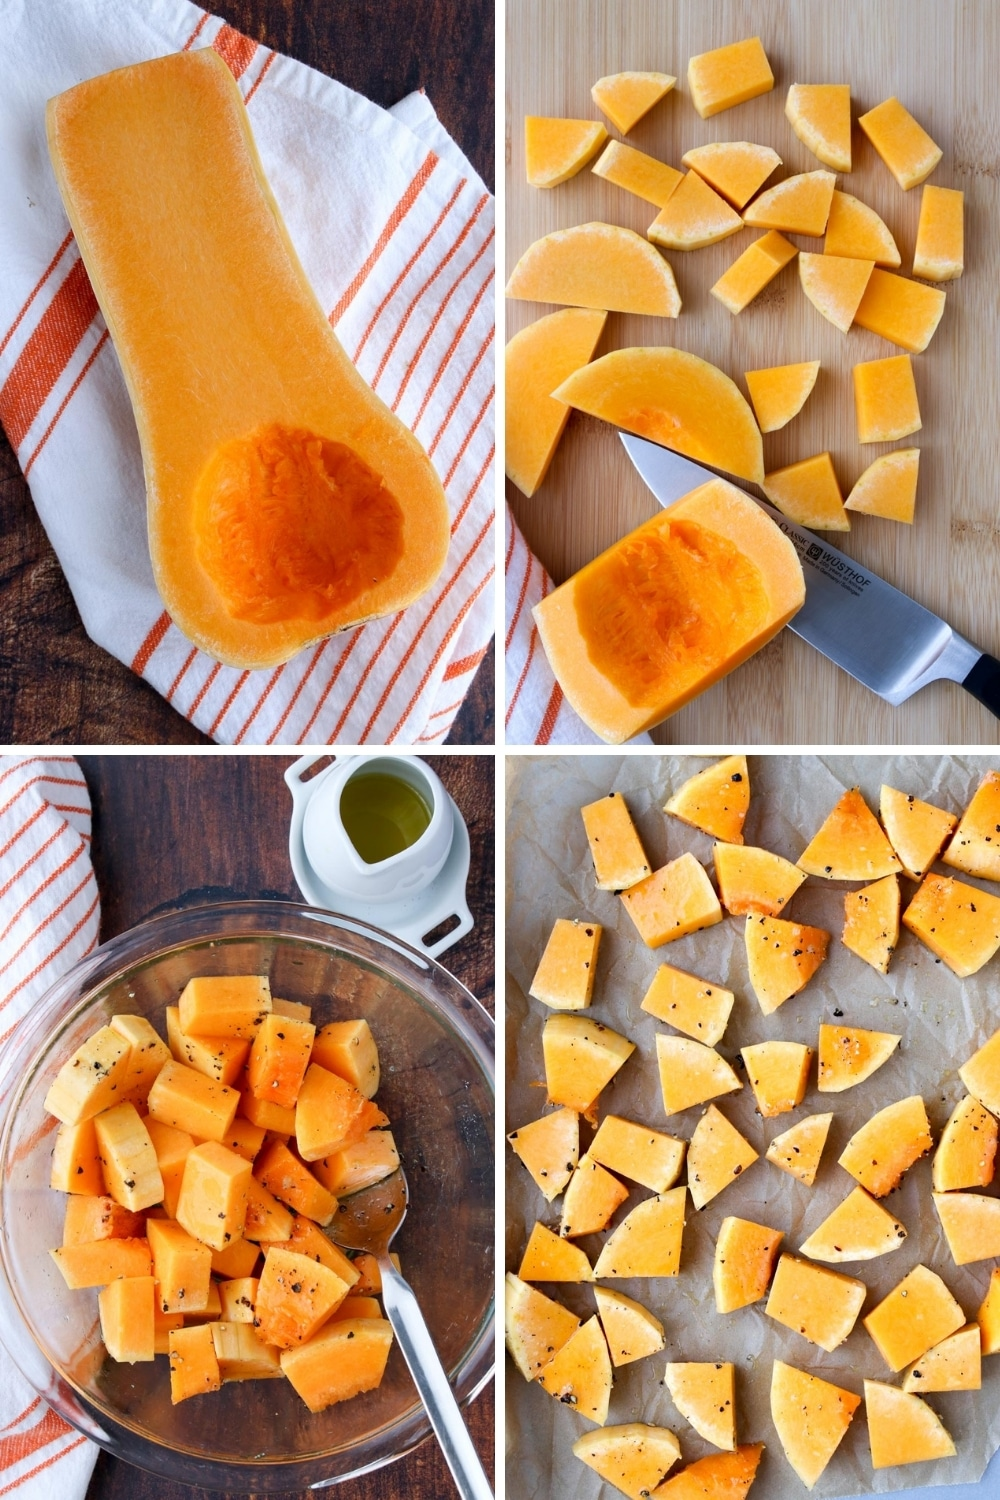 Collage showing first four steps of making squash puree